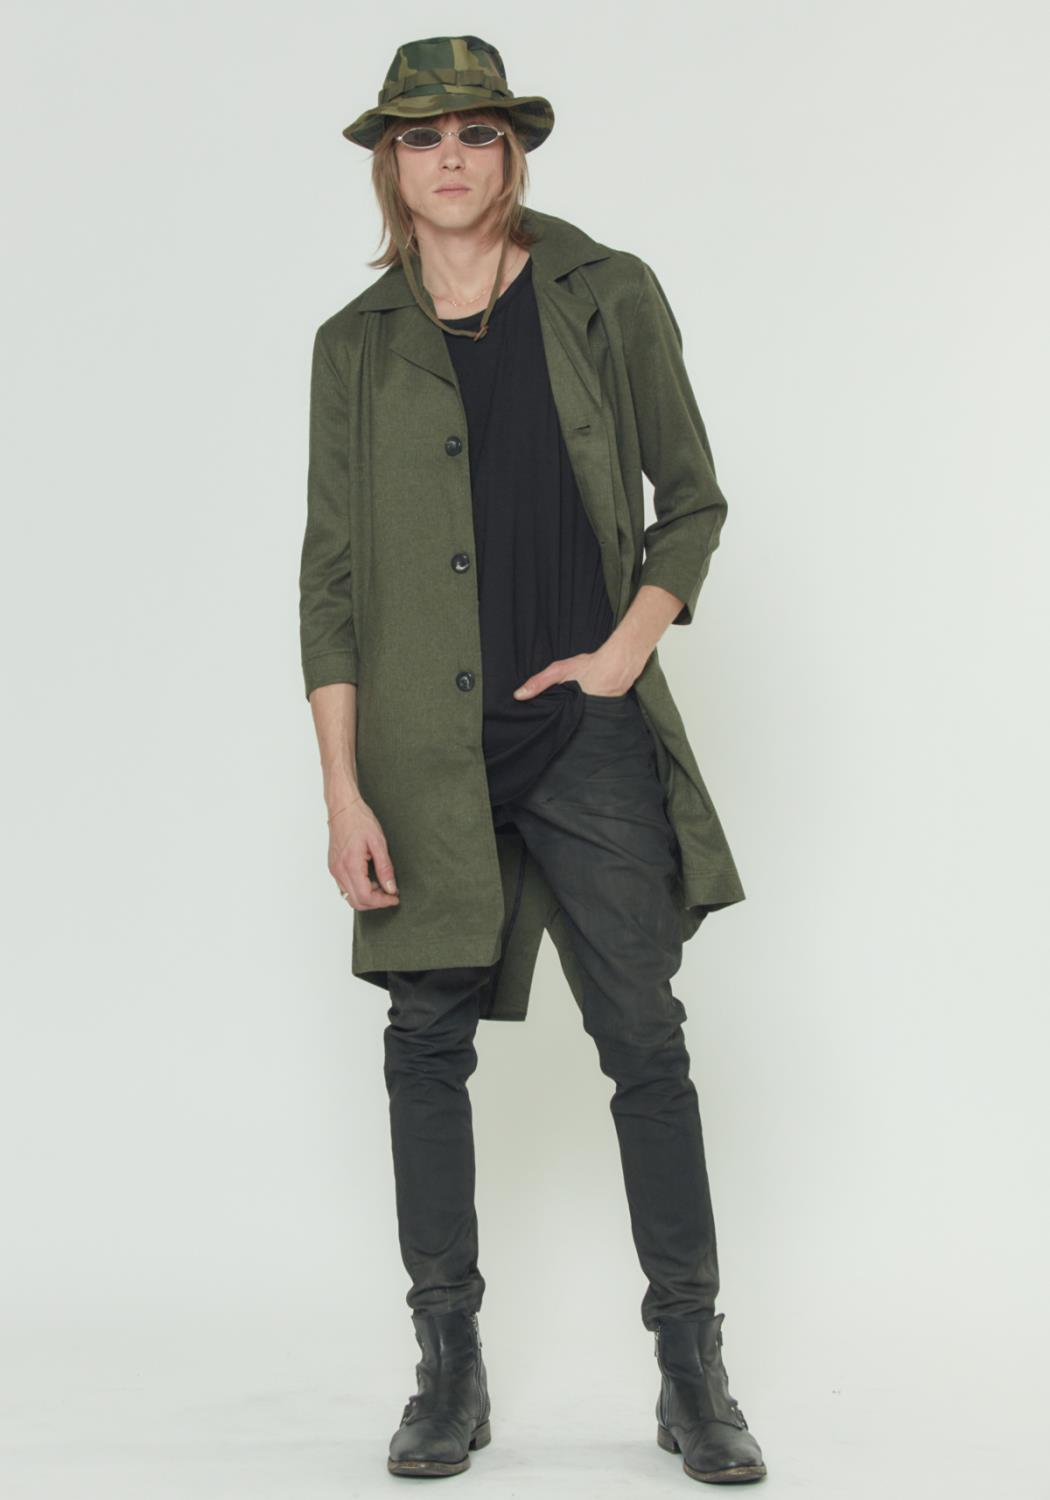 3/4 SLEEVE COAT WITH FISH TAIL